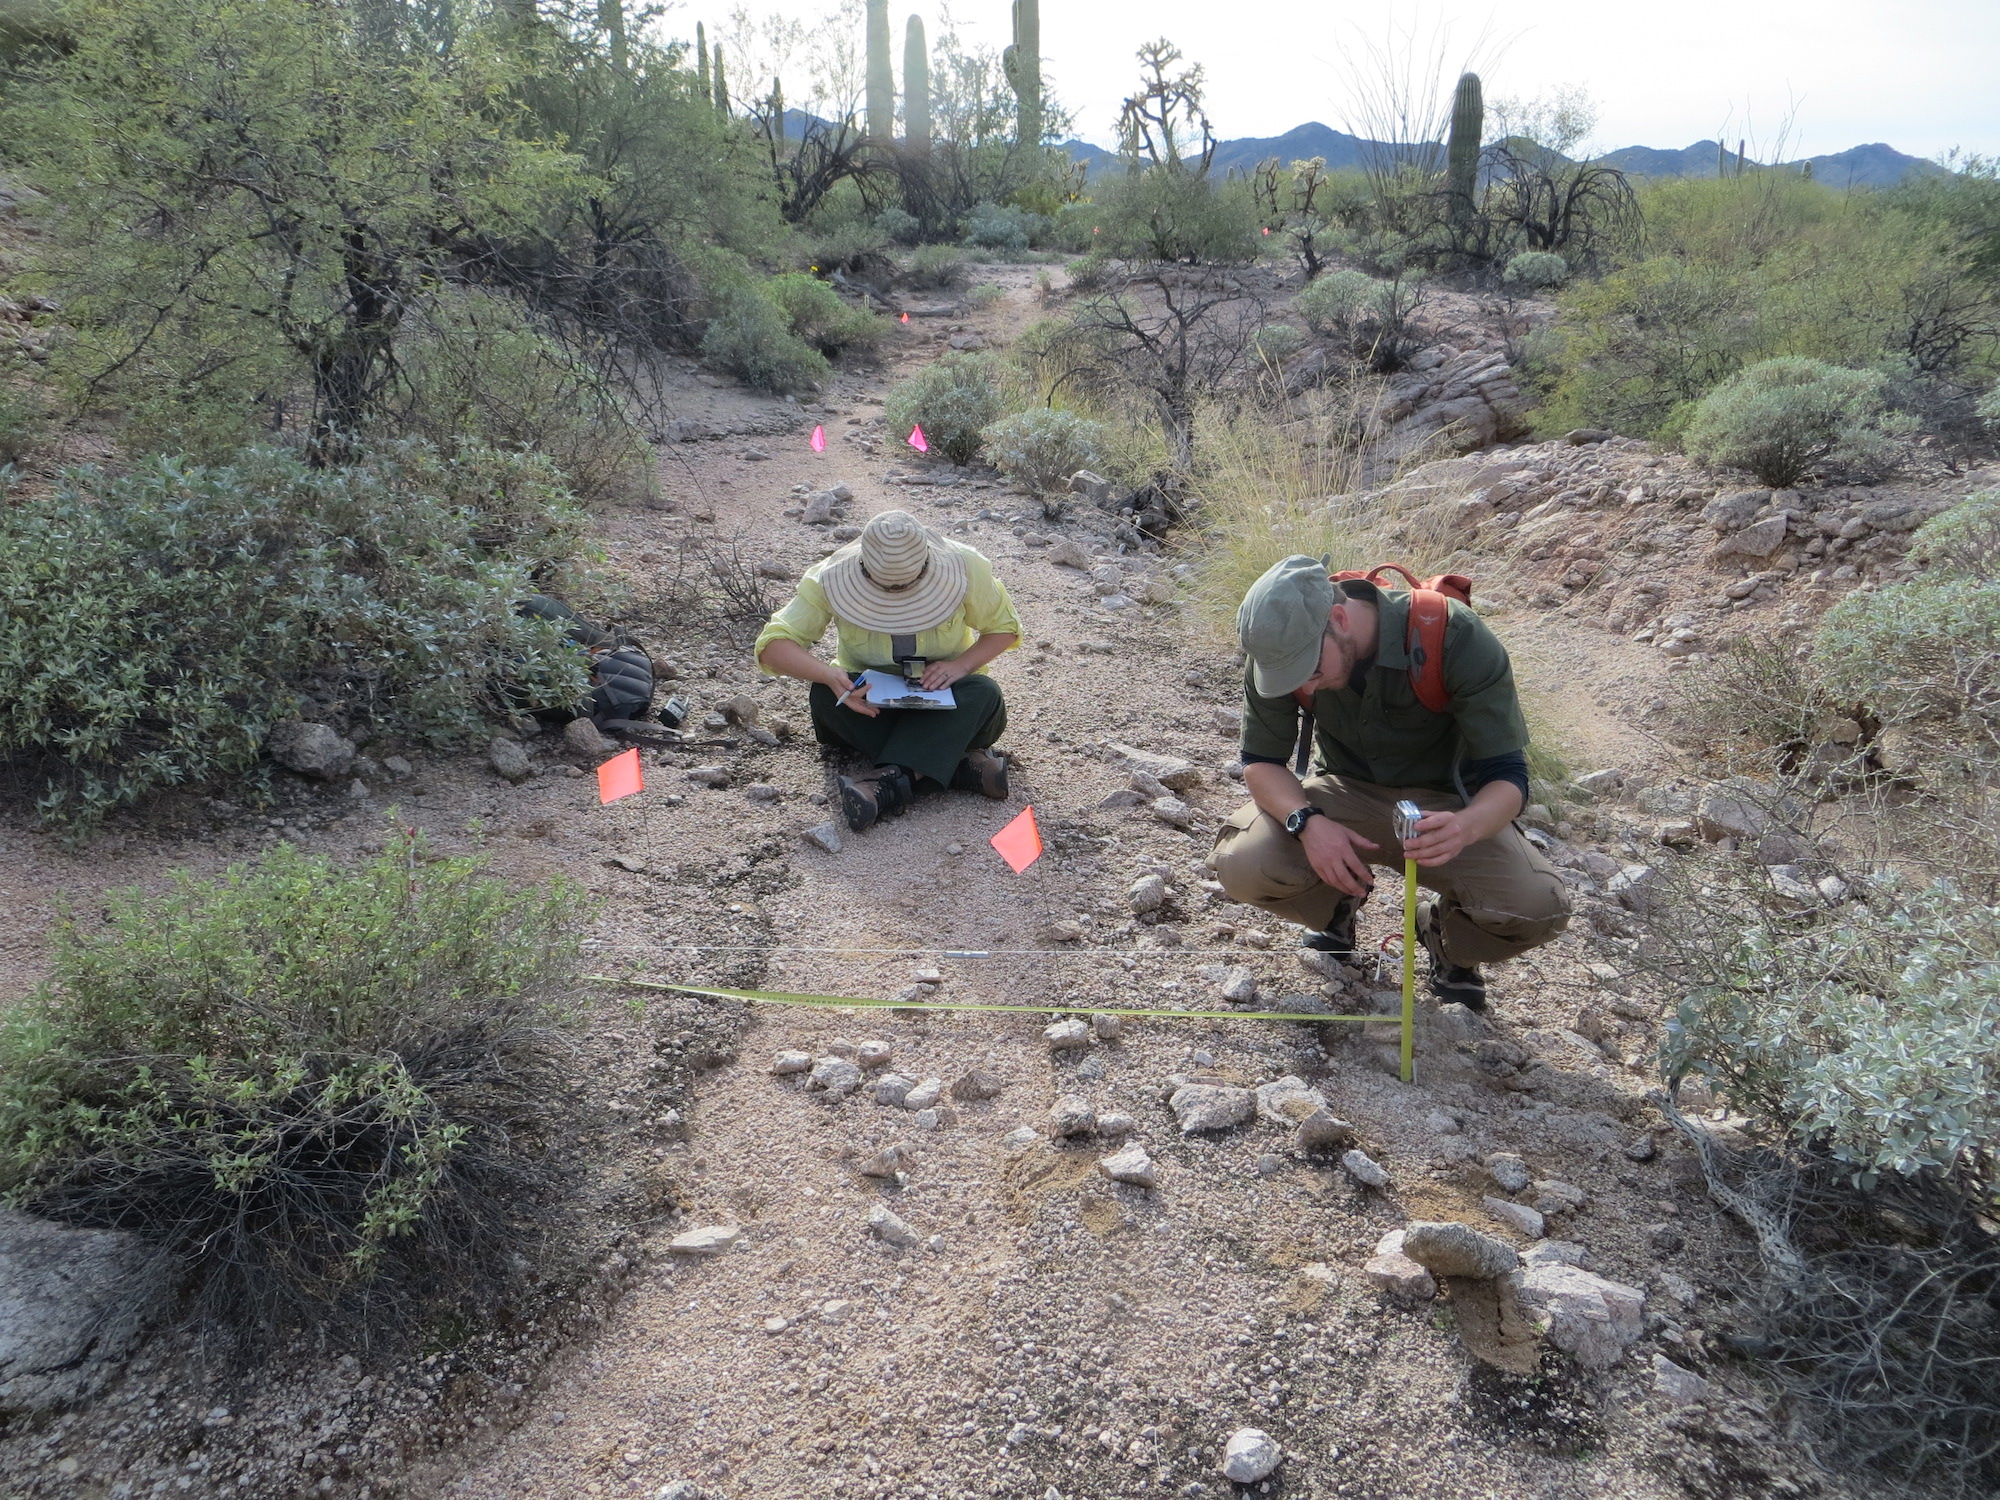 Former UArizona graduate students Sharlot Hart  and Mario Battaglia record the physical attributes of a trail used by the Tohono O'odham in Organ Pipe Cactus National Monument. The work was part of a project to find and document the ancient trails so the